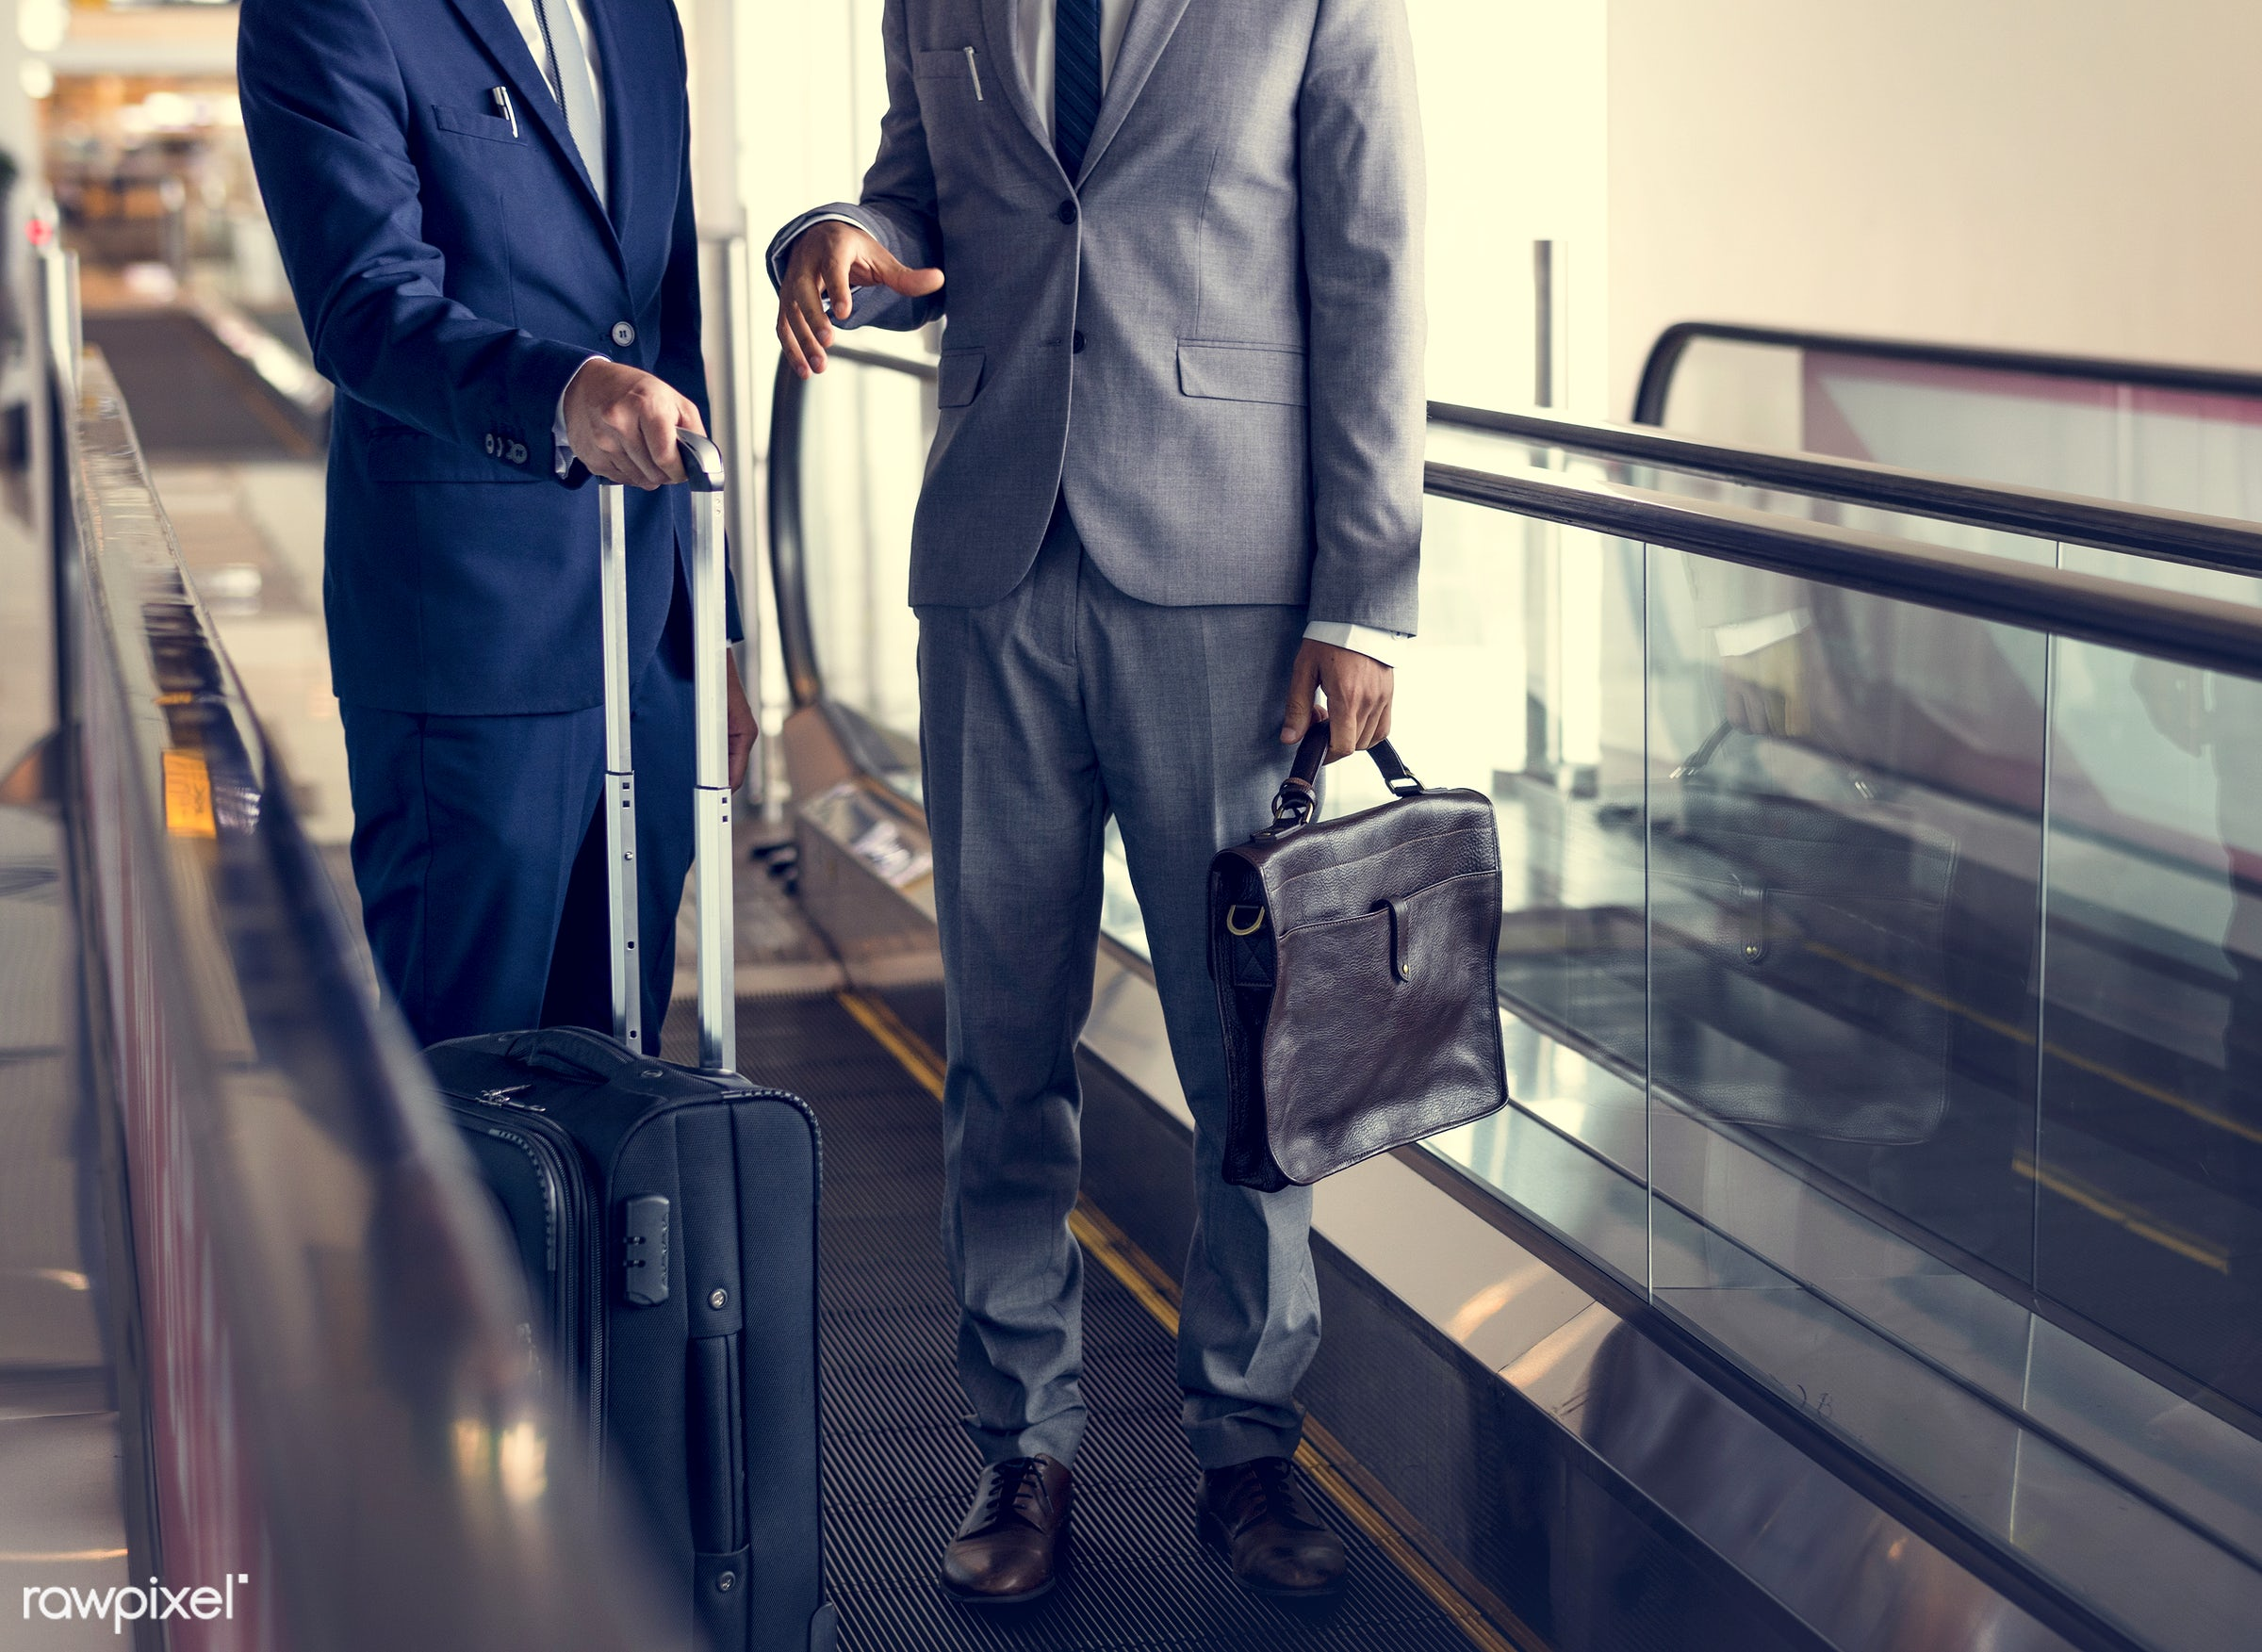 business trip, baggage, person, suit and tie, manager, diverse, white collar worker, luggage, travel, people, business,...